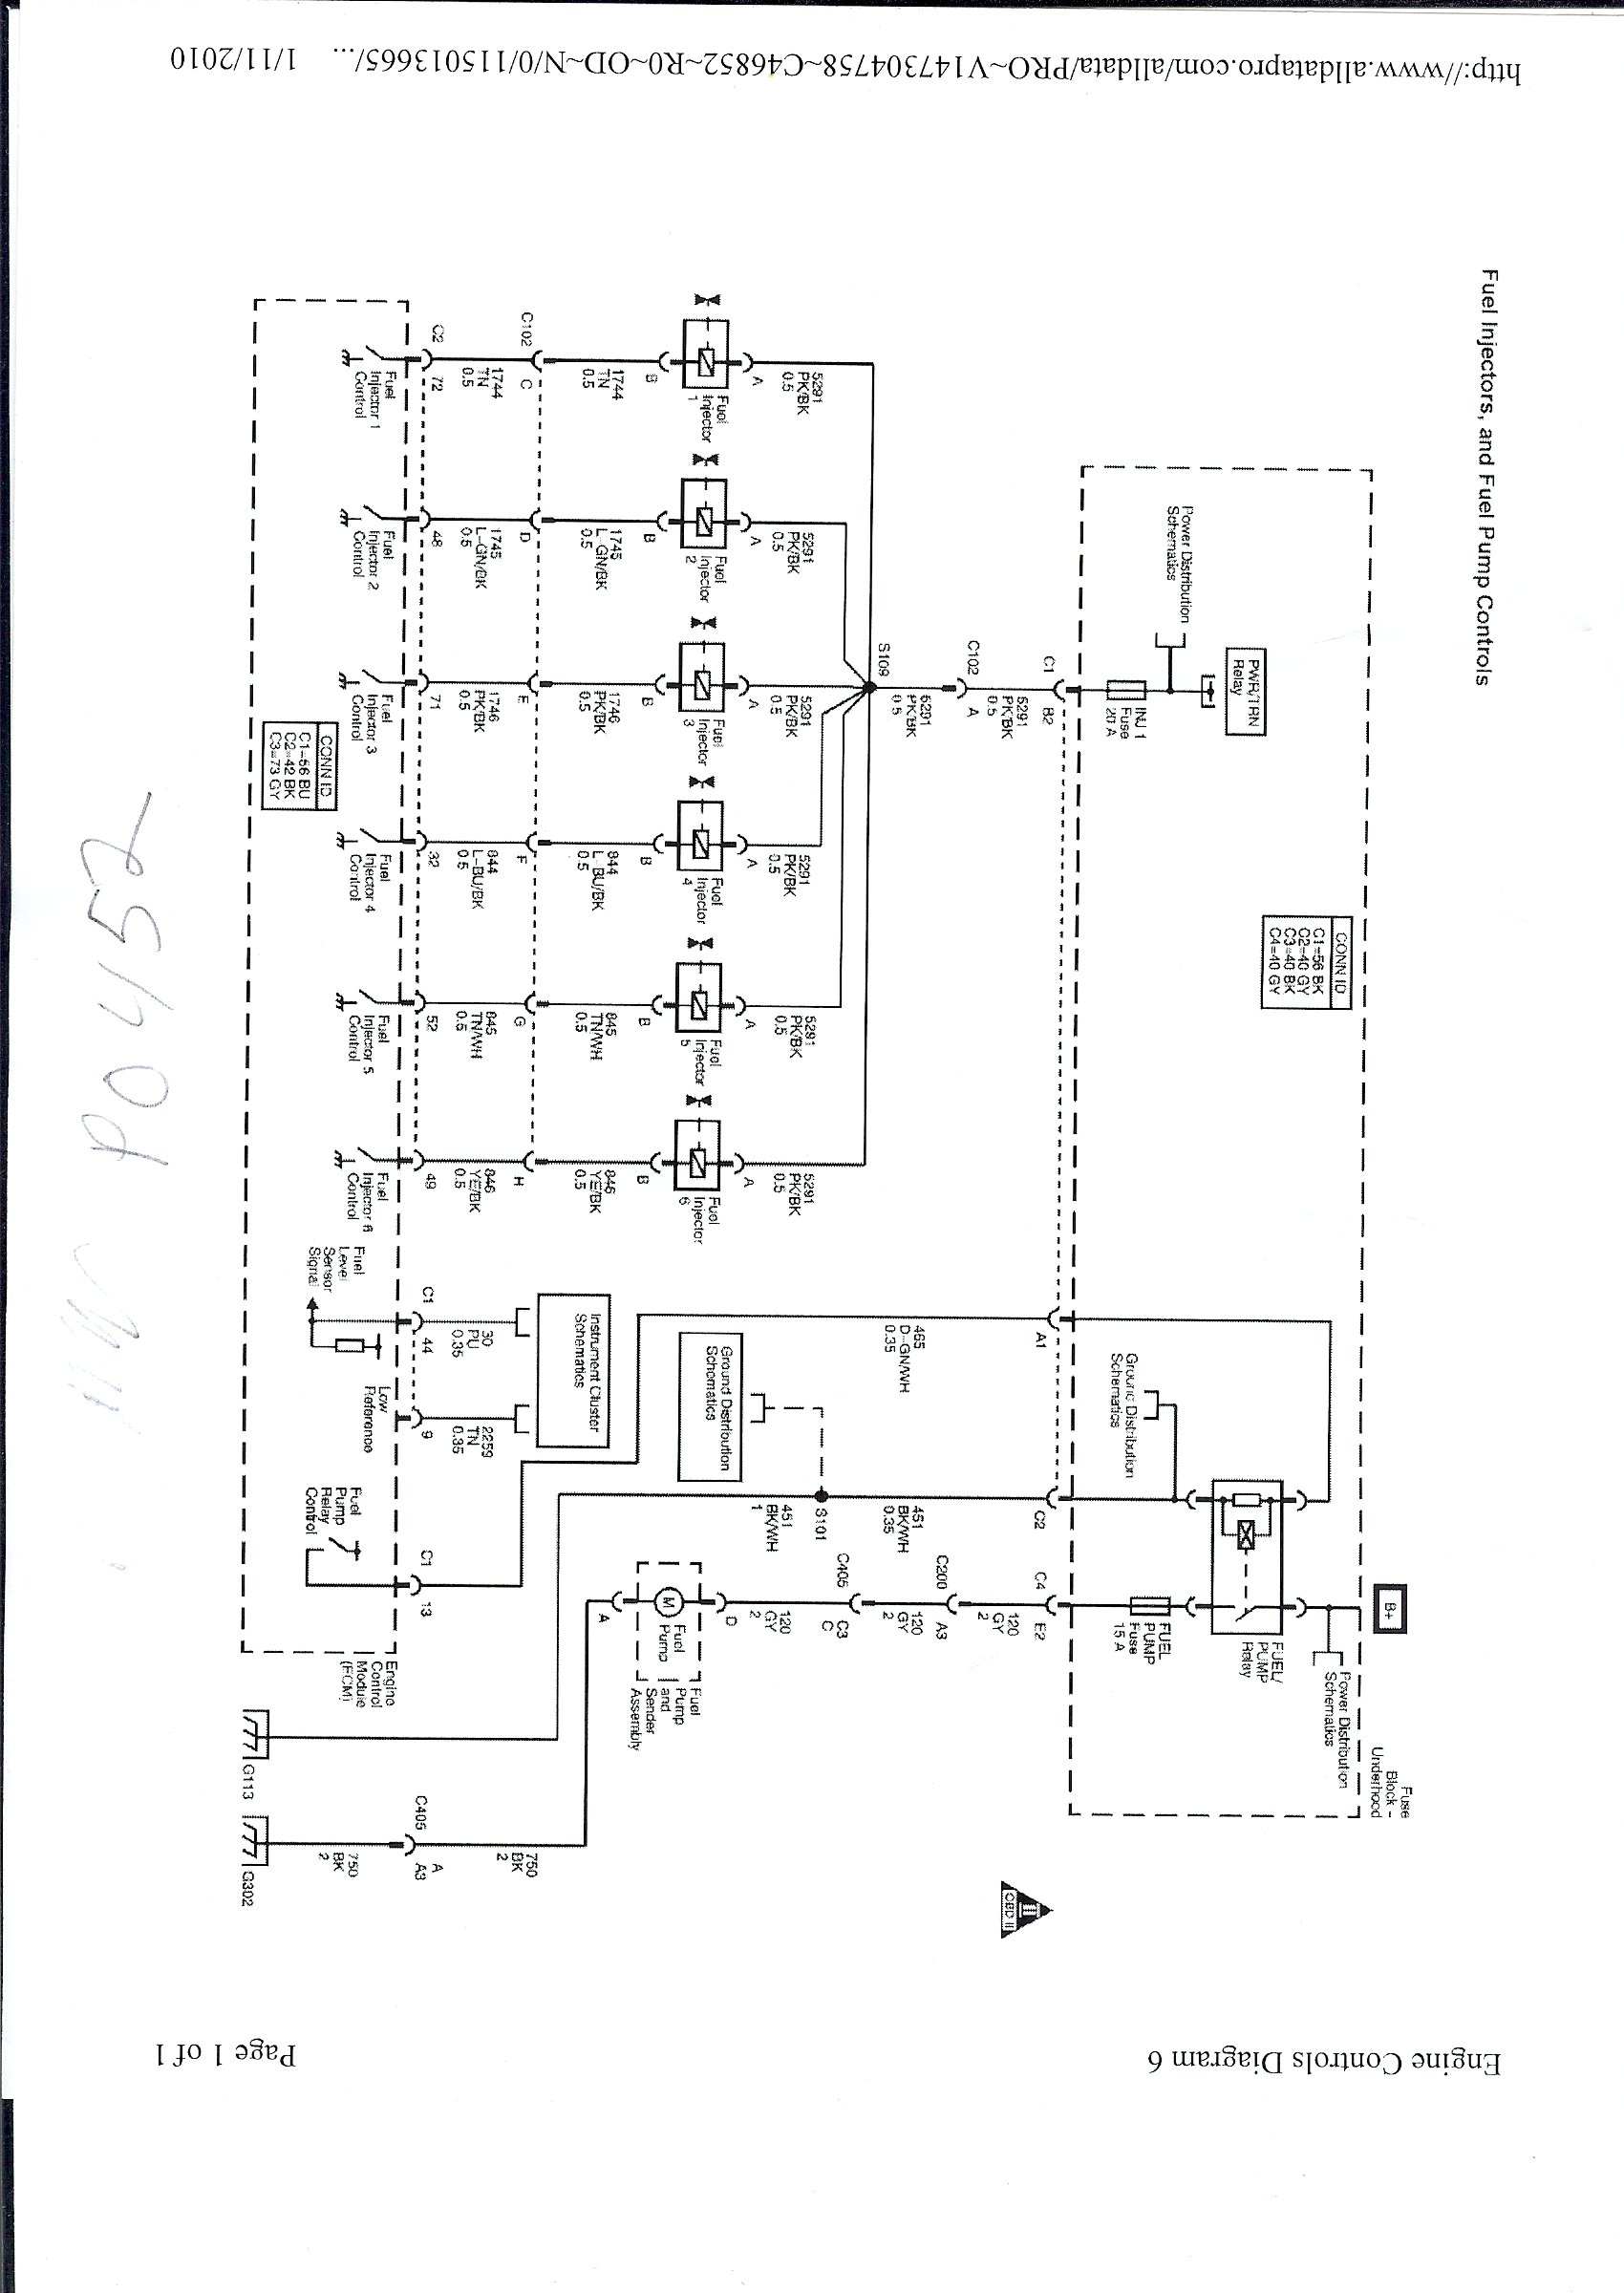 2006 impala starter wiring diagram 2006 image 2006 impala wiring diagram 2006 image wiring diagram on 2006 impala starter wiring diagram